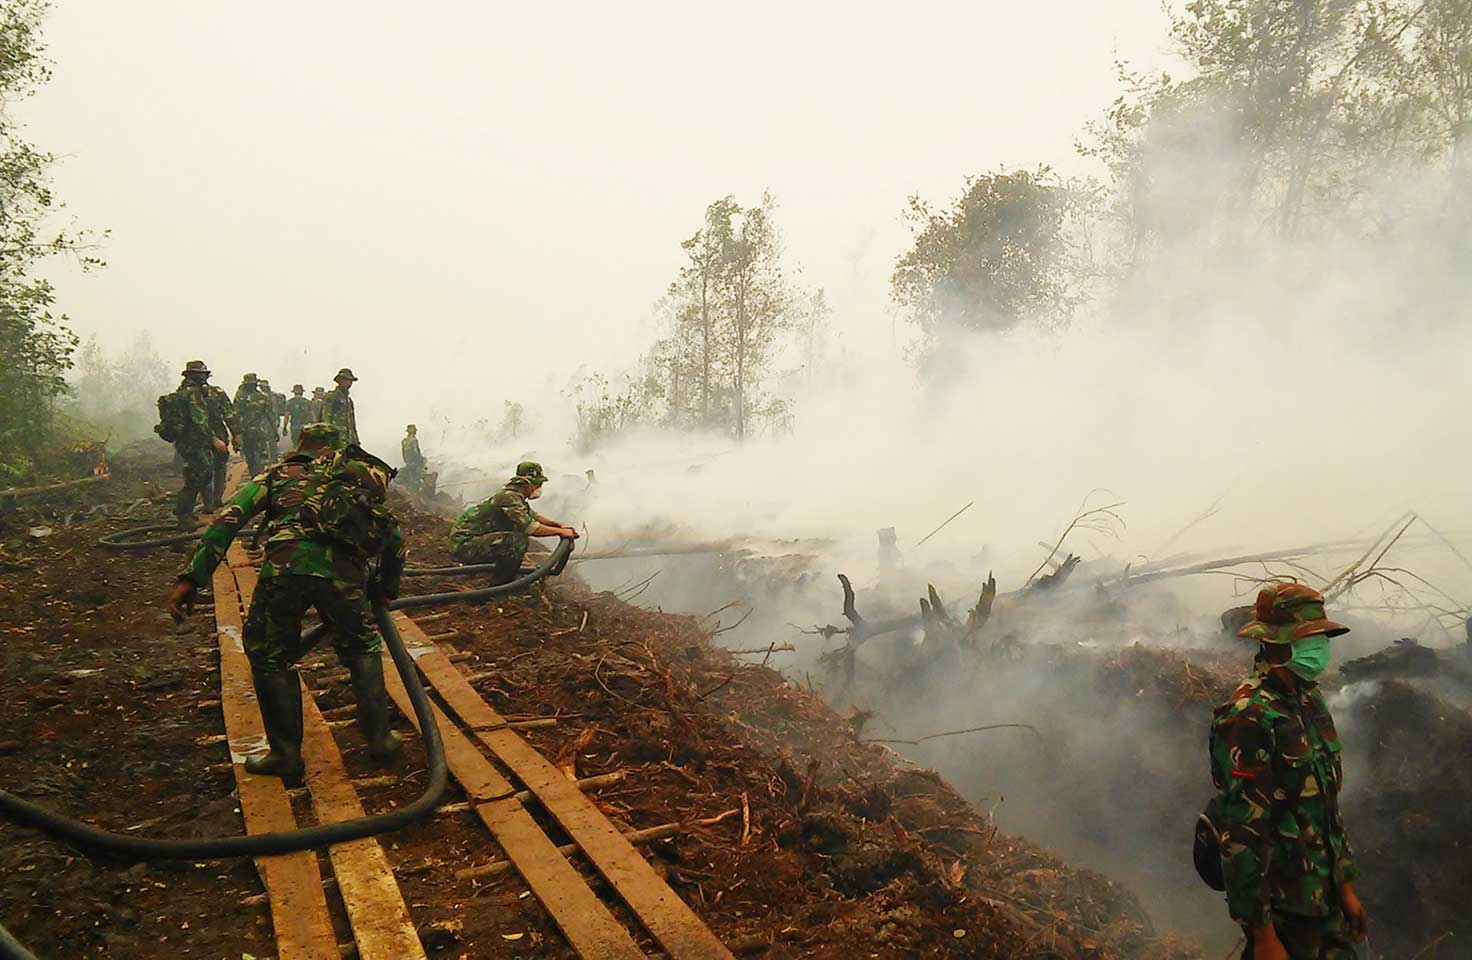 Photo of Indonesian military personnel fighting peat fire